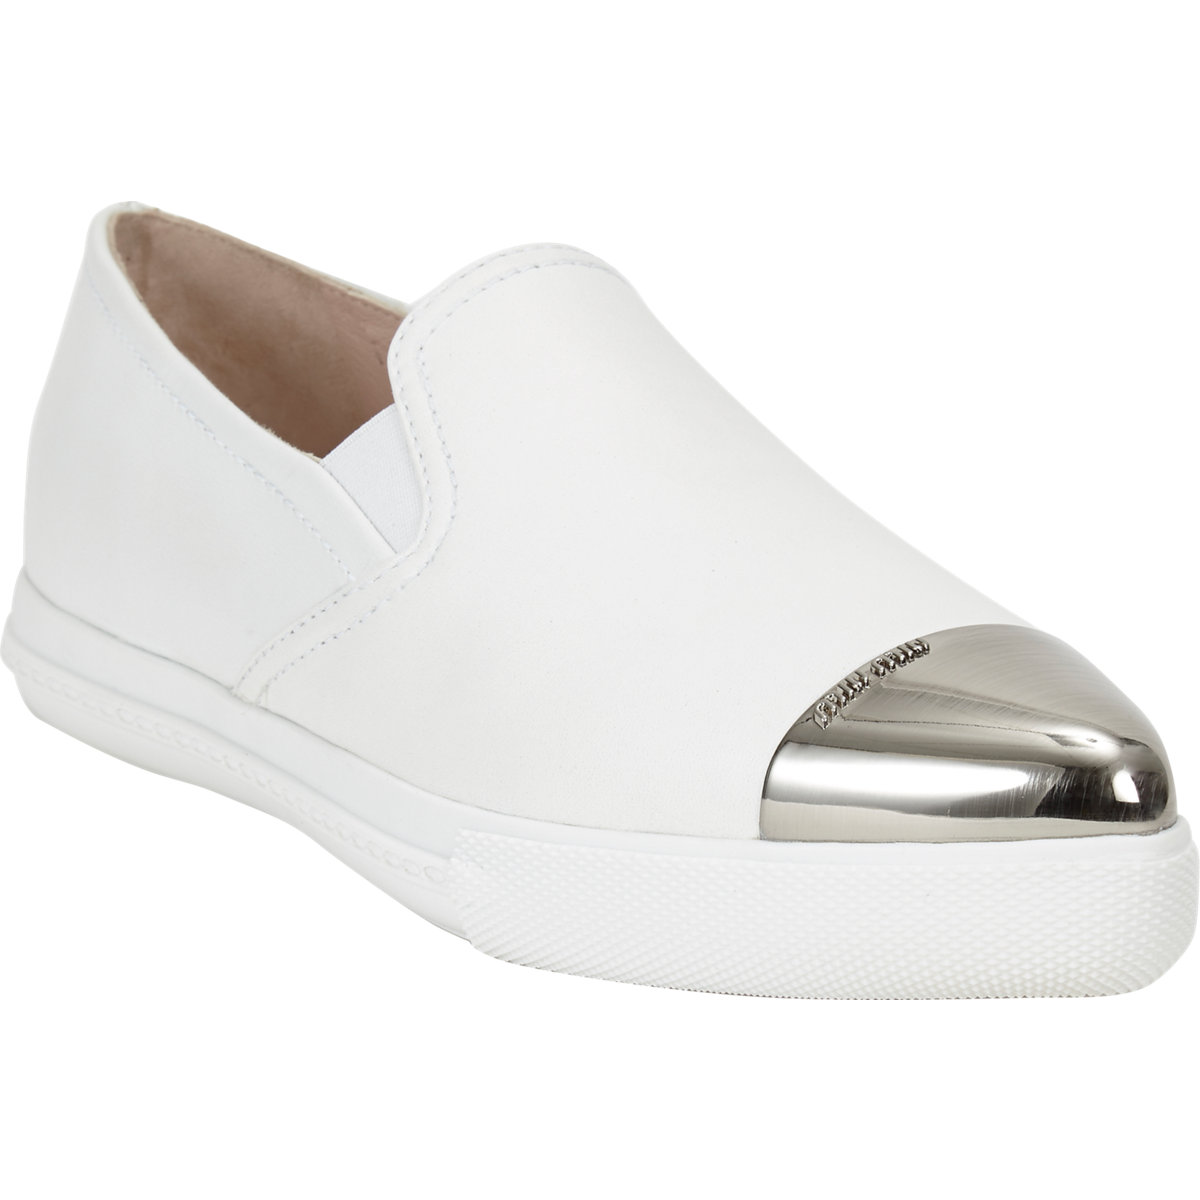 Miu Miu Metal Captoe Slip-on Sneakers at Barneys.com